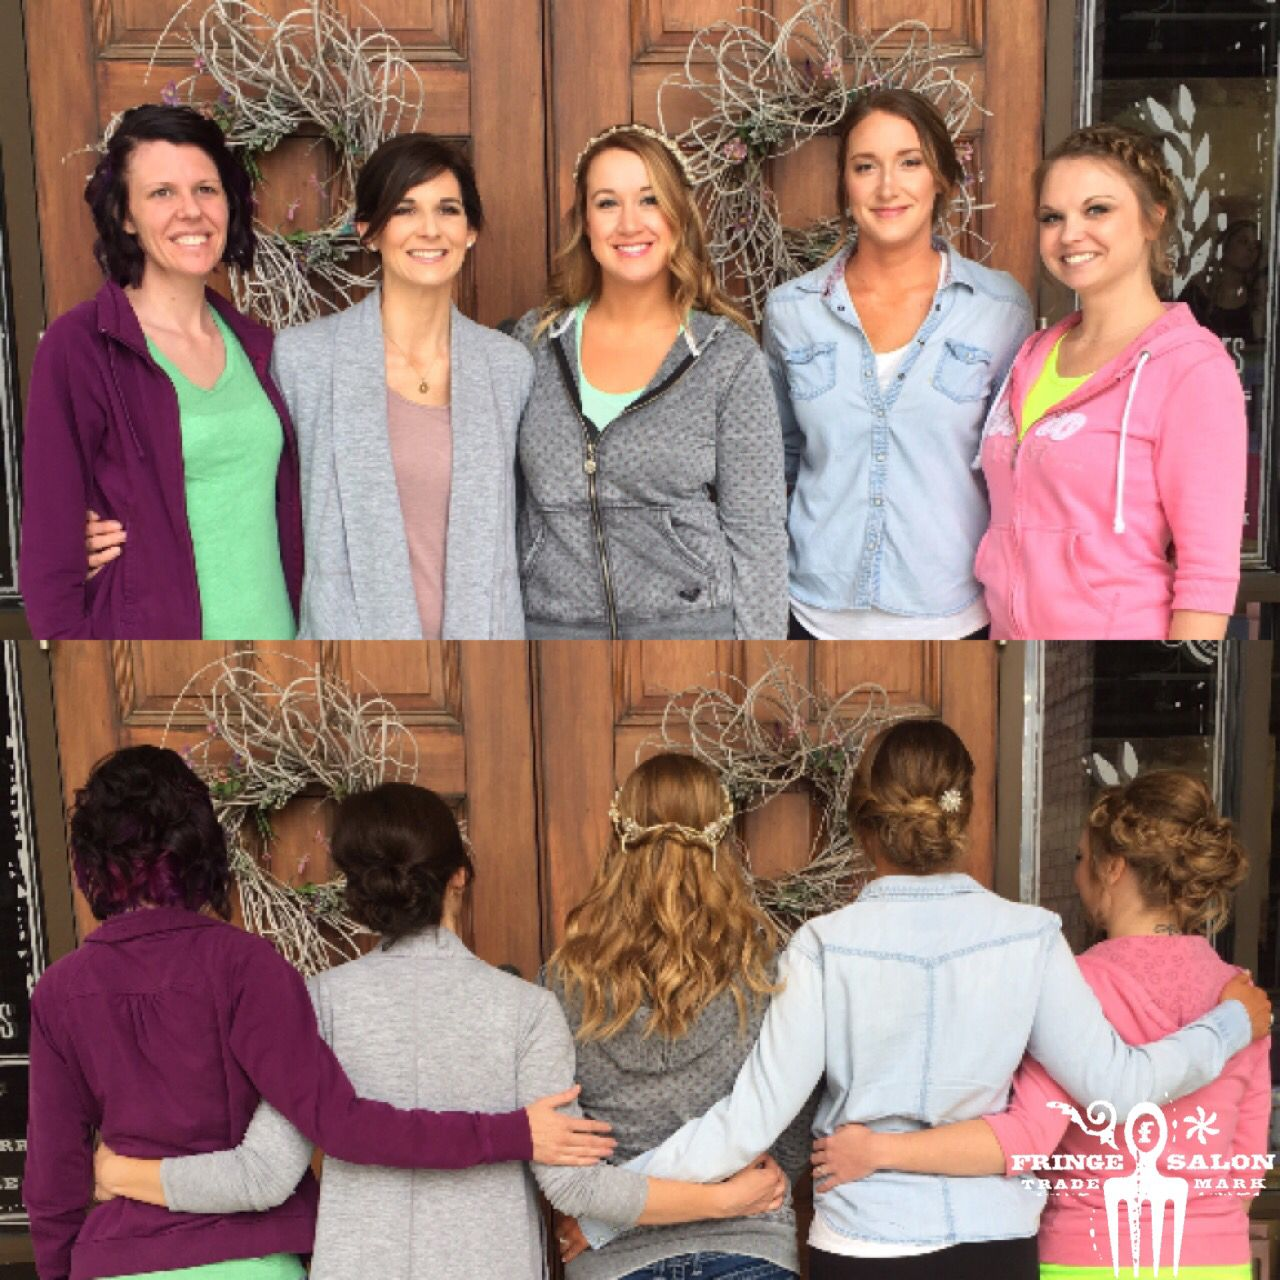 wedding hair & makeup by julie, lauren, mariah, alexx